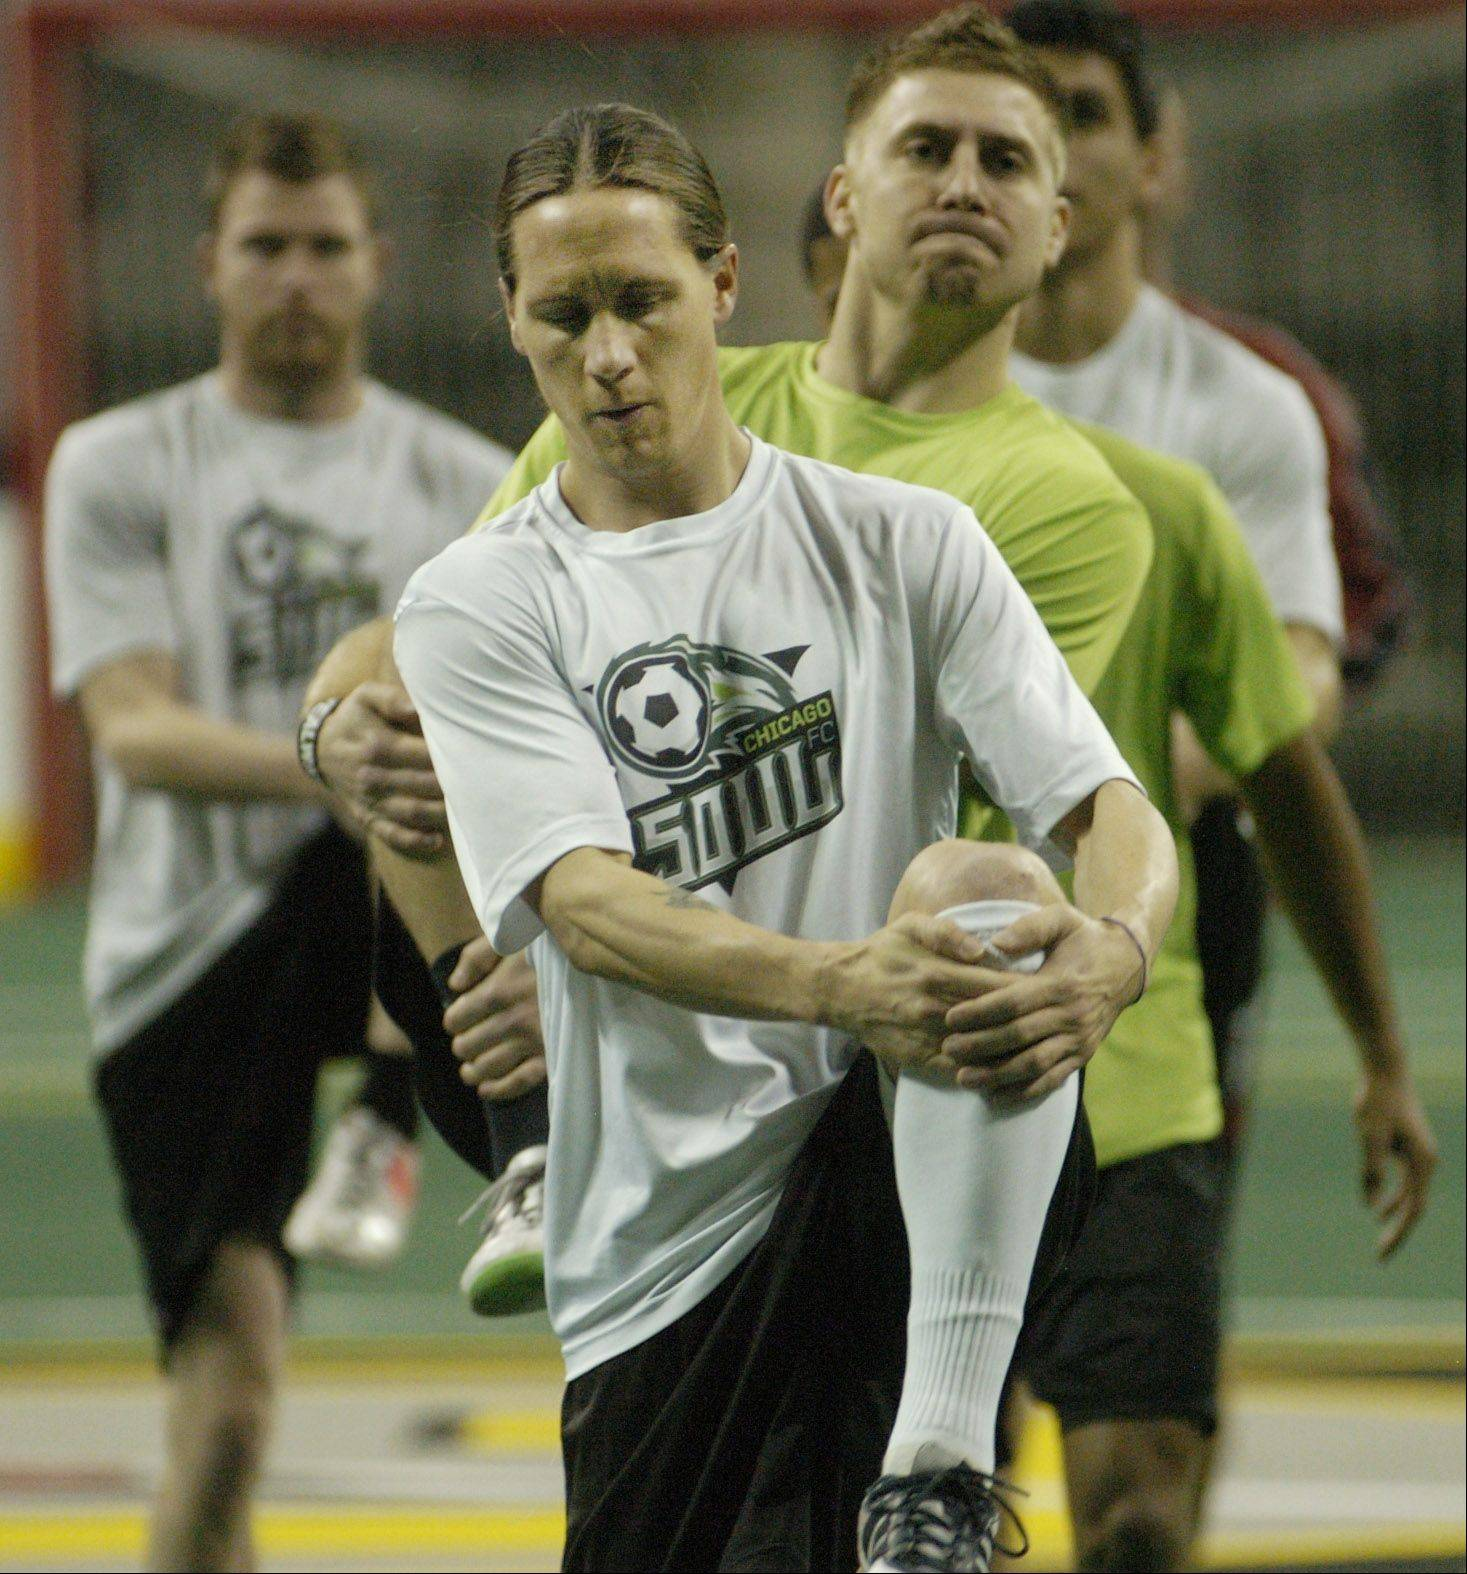 Team captain Matthew Stewart takes the team through warm-ups as the Chicago Soul indoor soccer team works out at the Sears Centre.